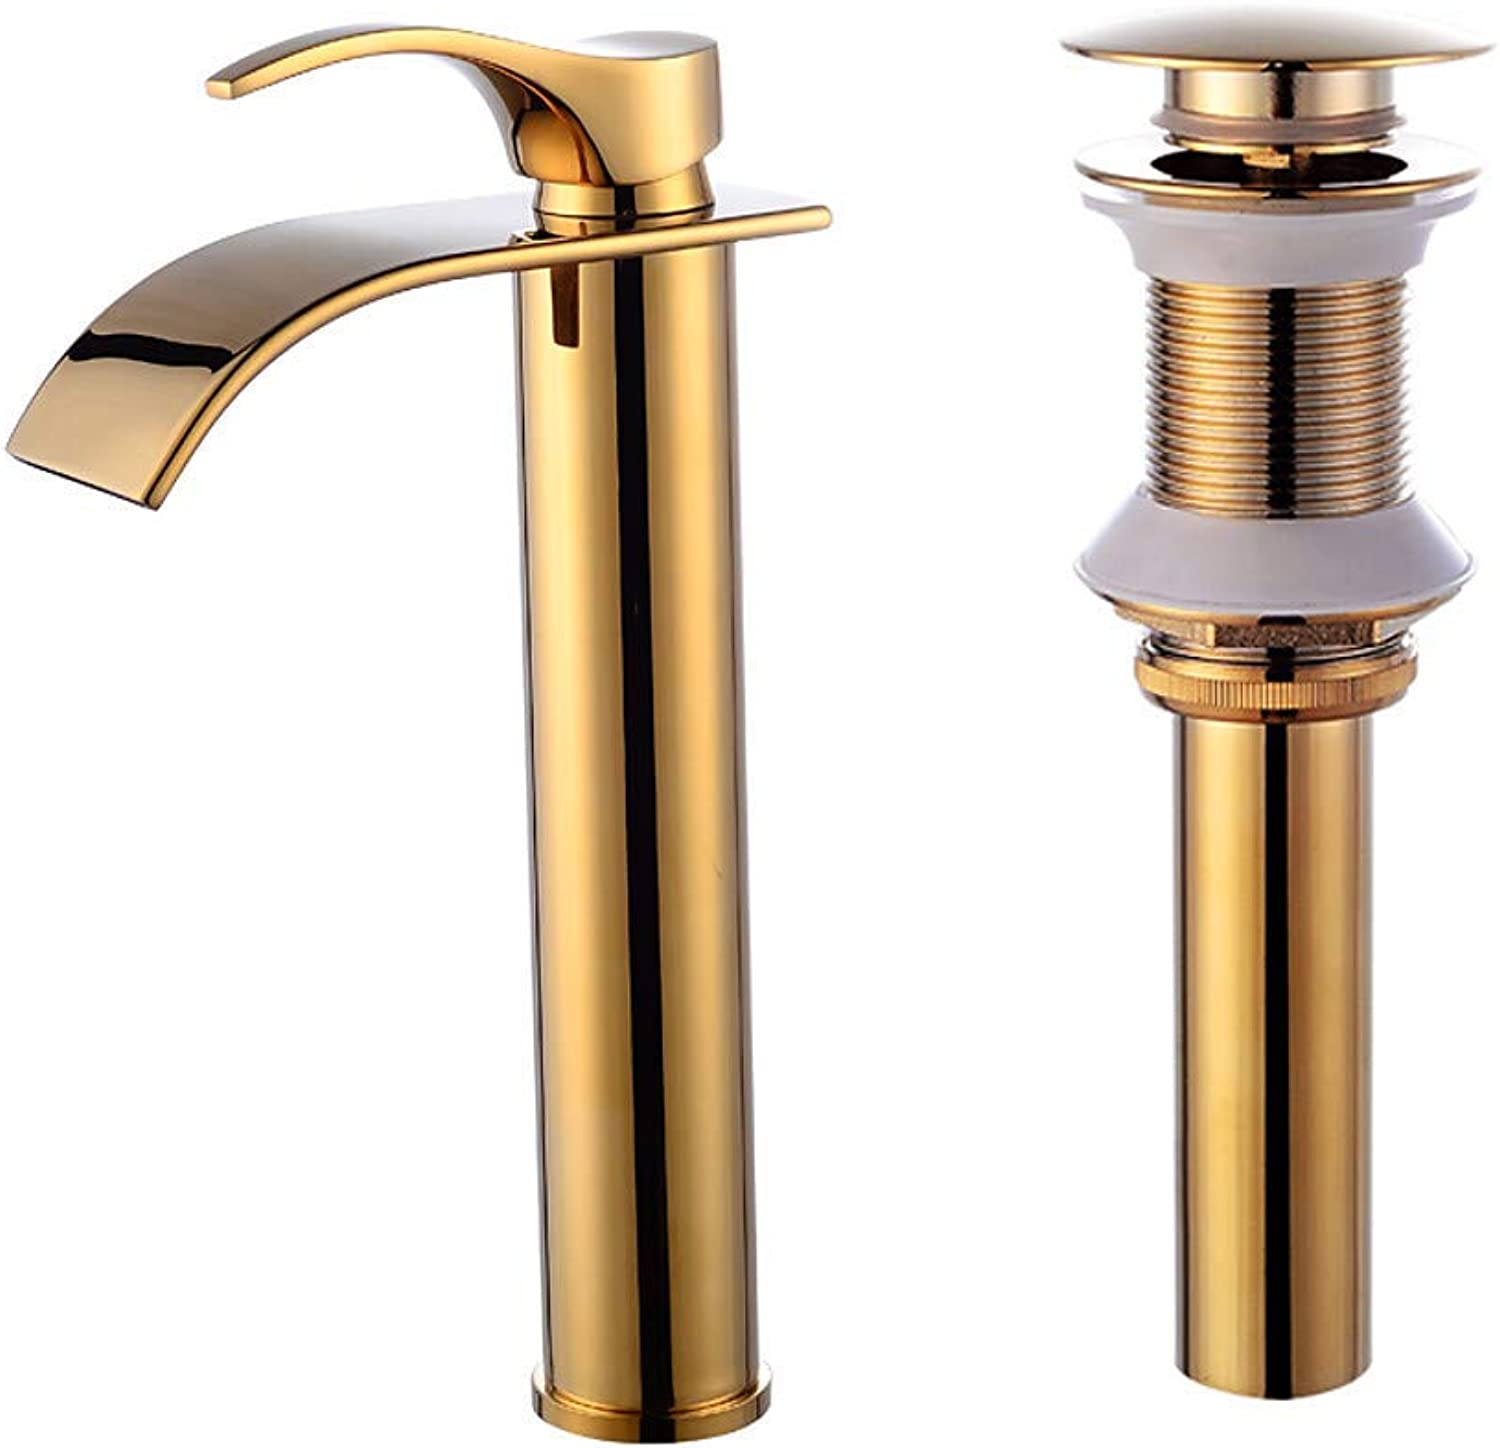 Faucet Set - Waterfall gold Centerset Single Handle One Hole